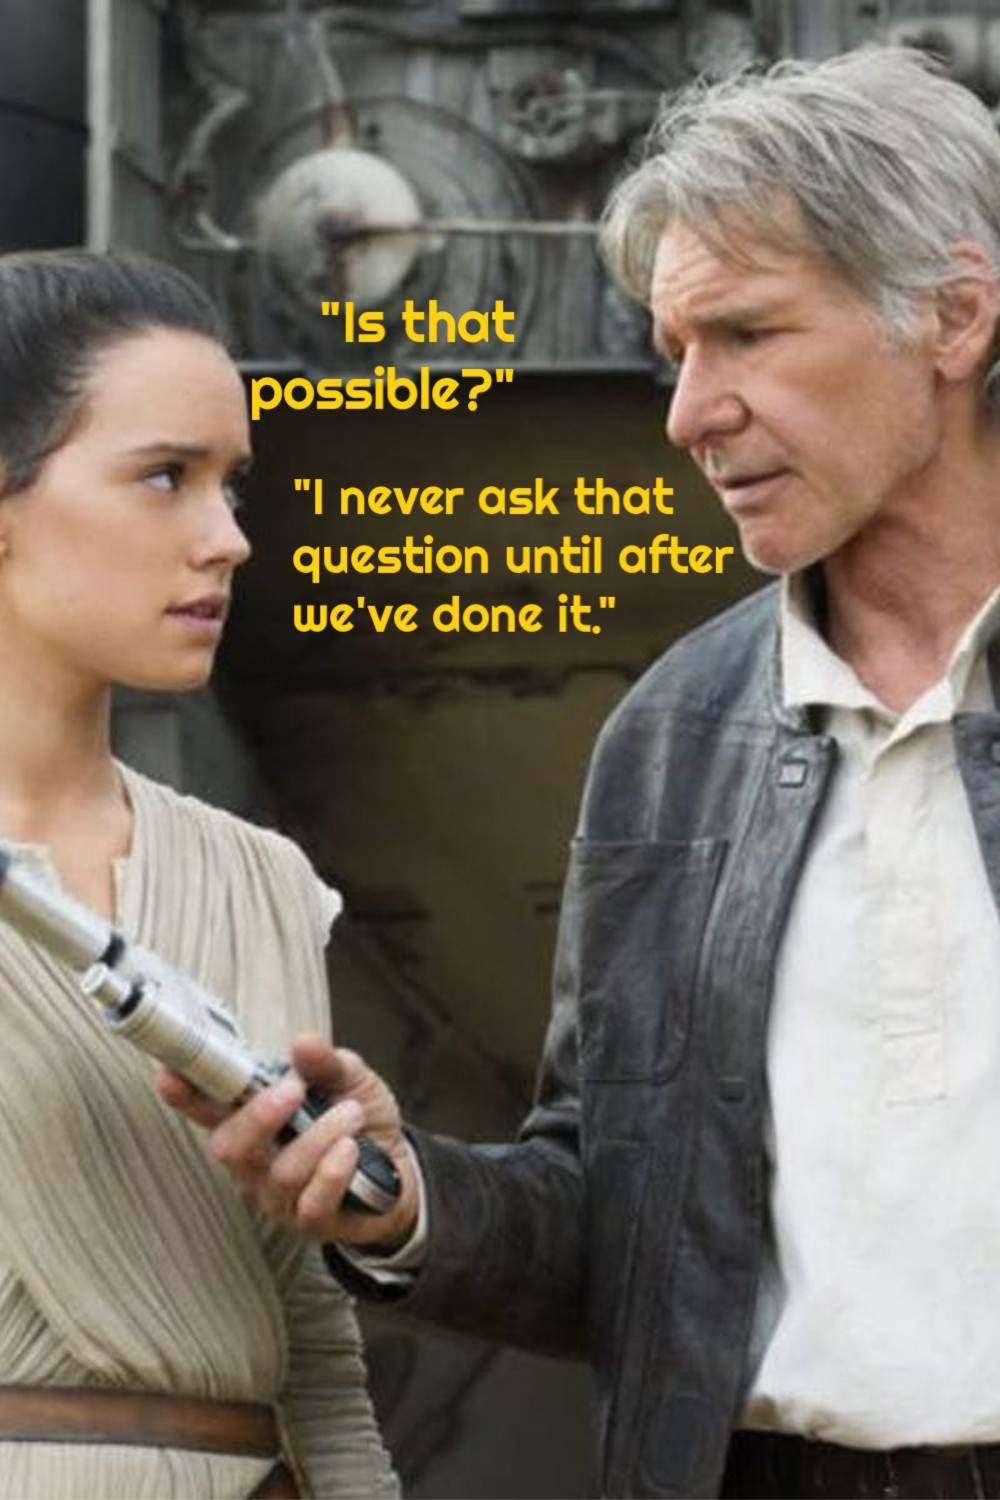 """Is that possible?"" Rey. ""I never ask that question until after we've done it."" Han Solo. #StarWars #quotes #forceawakens #inspirationalquotes"